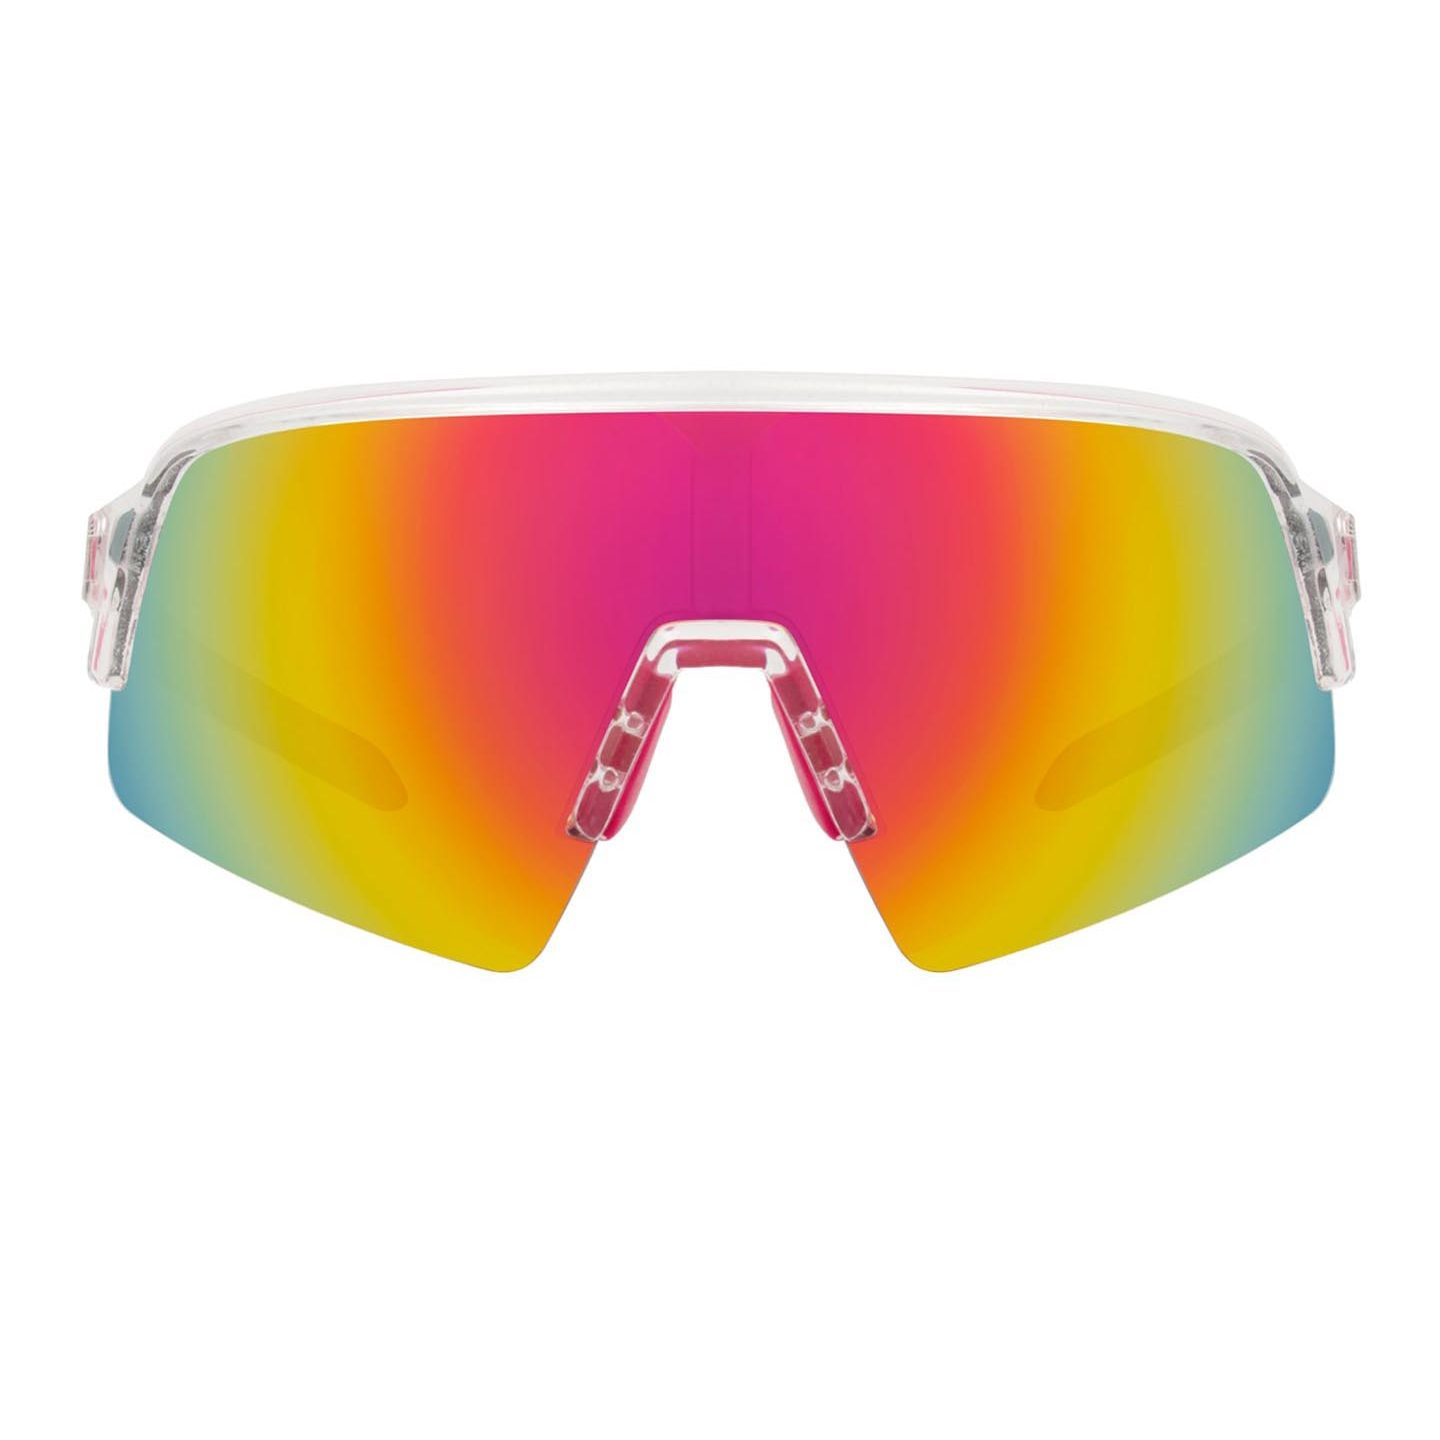 Types of Eyewear - Volleyball Goggles